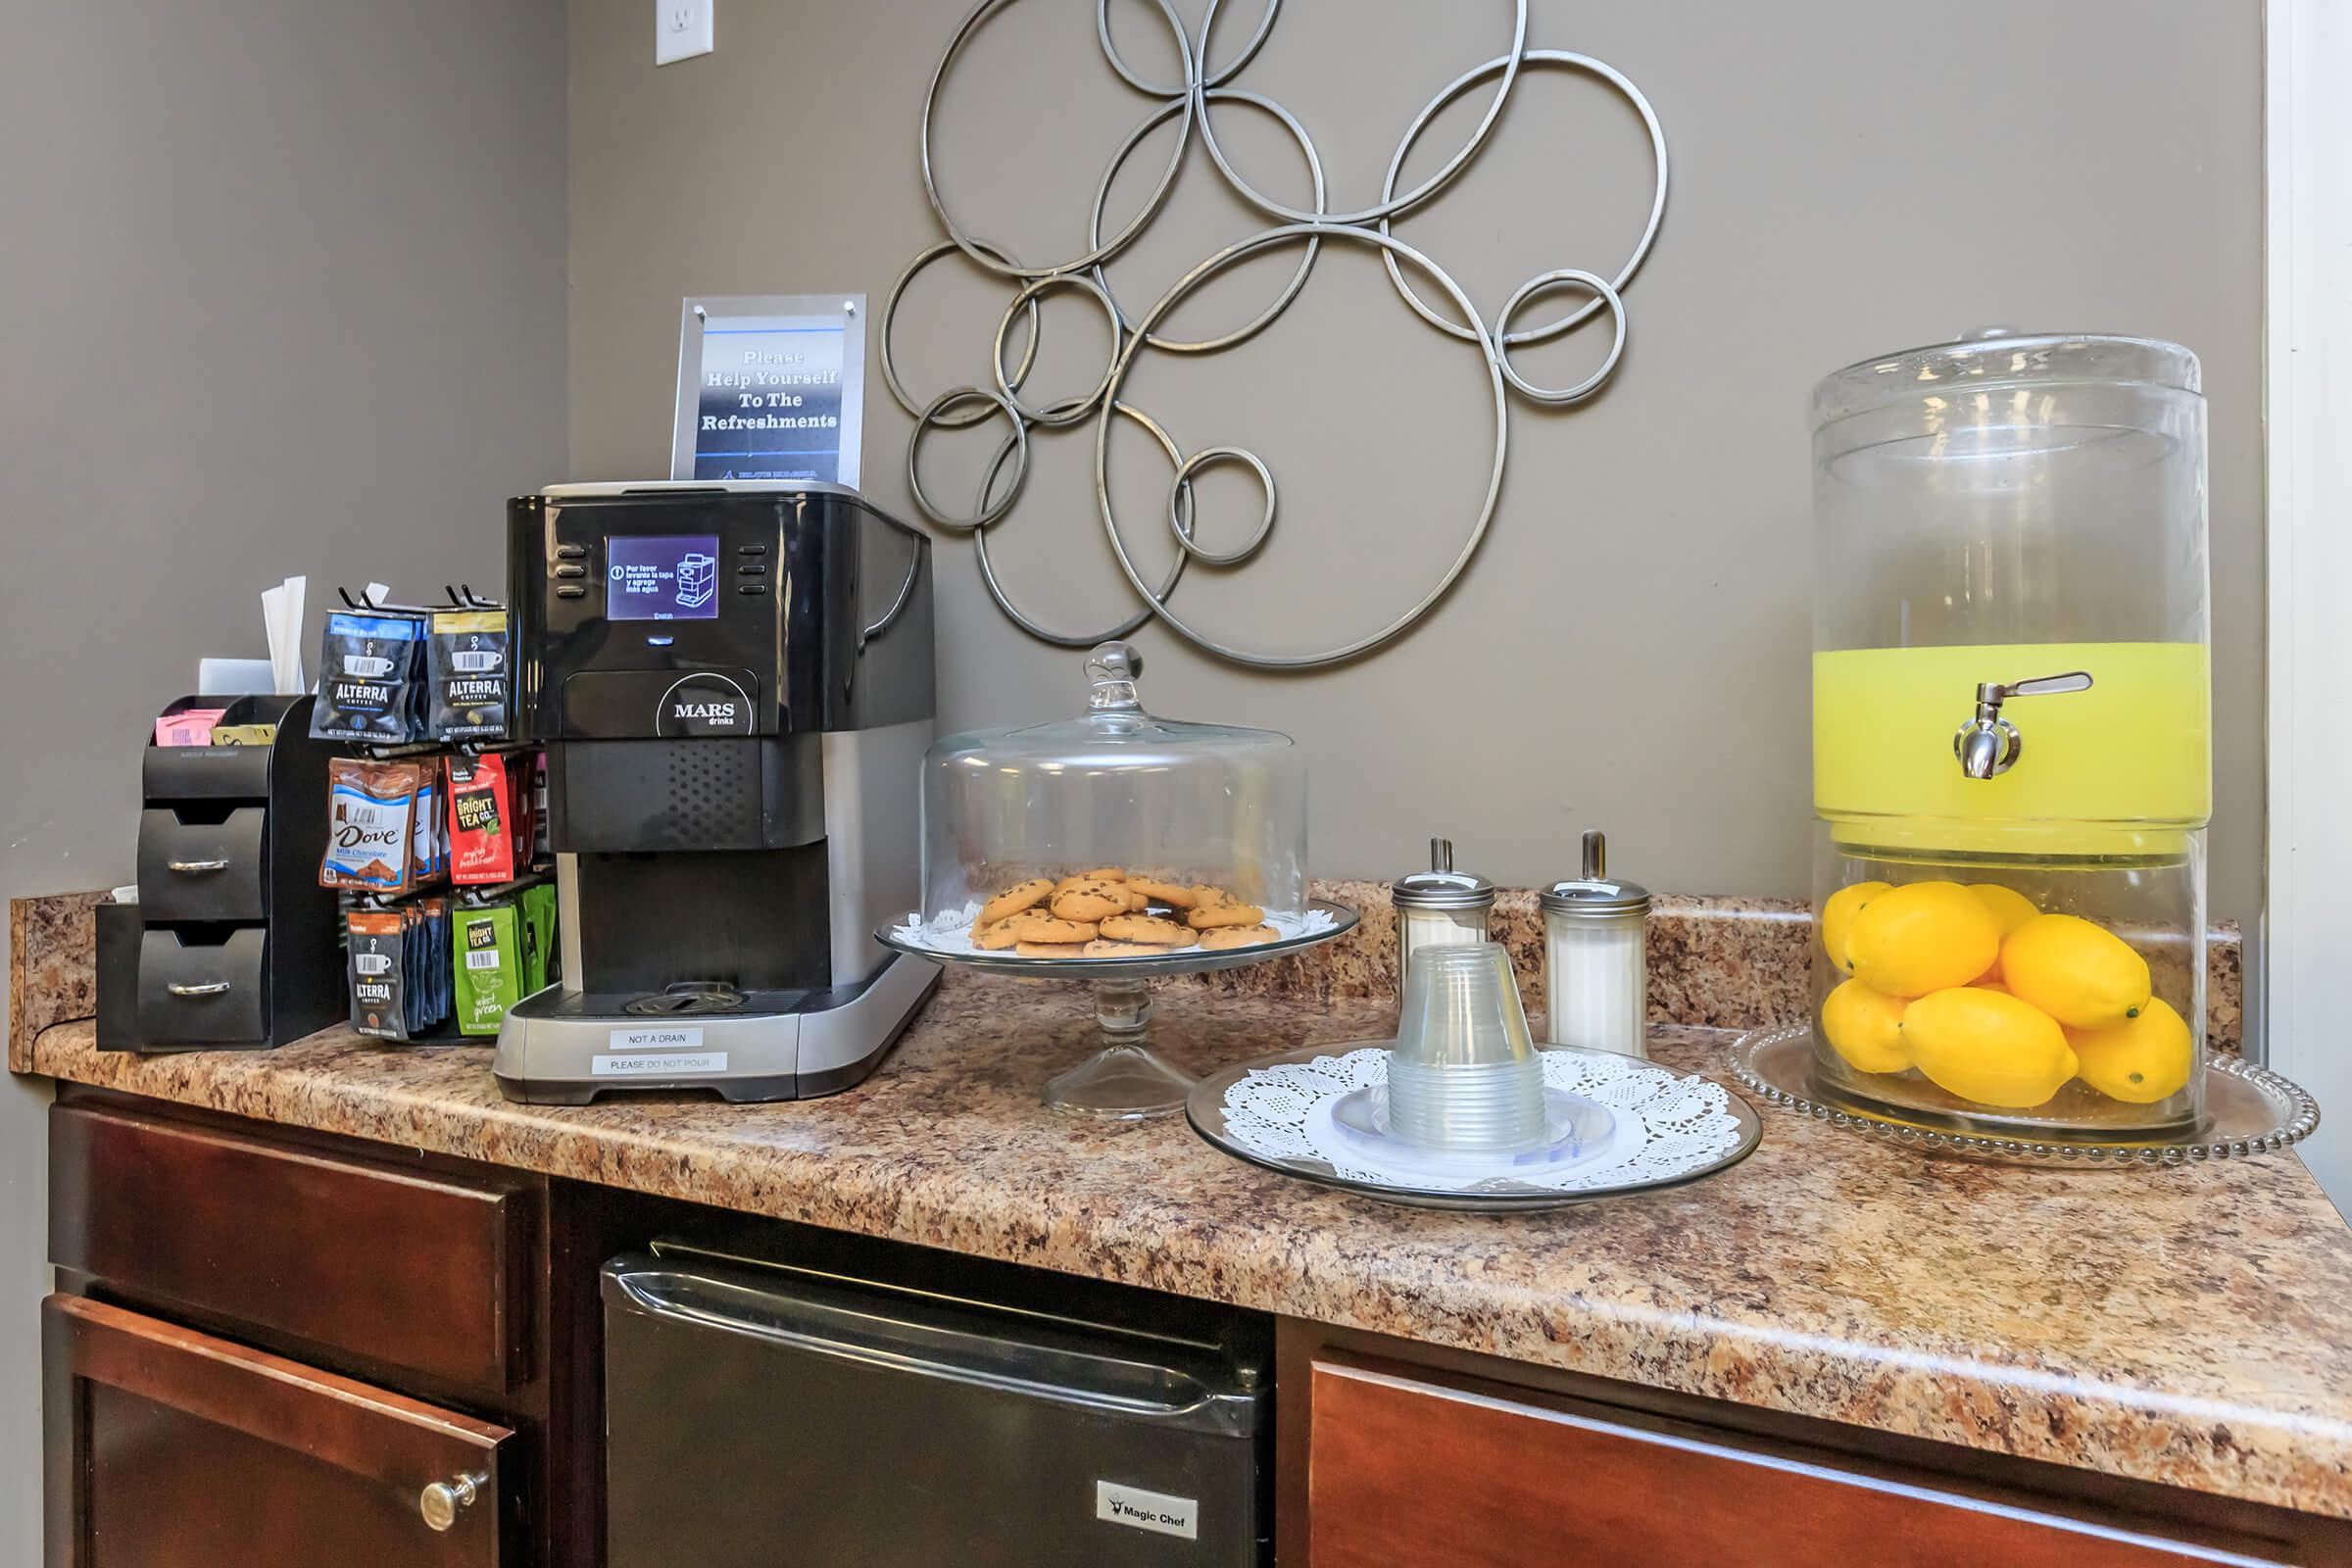 a blender sitting on top of a counter